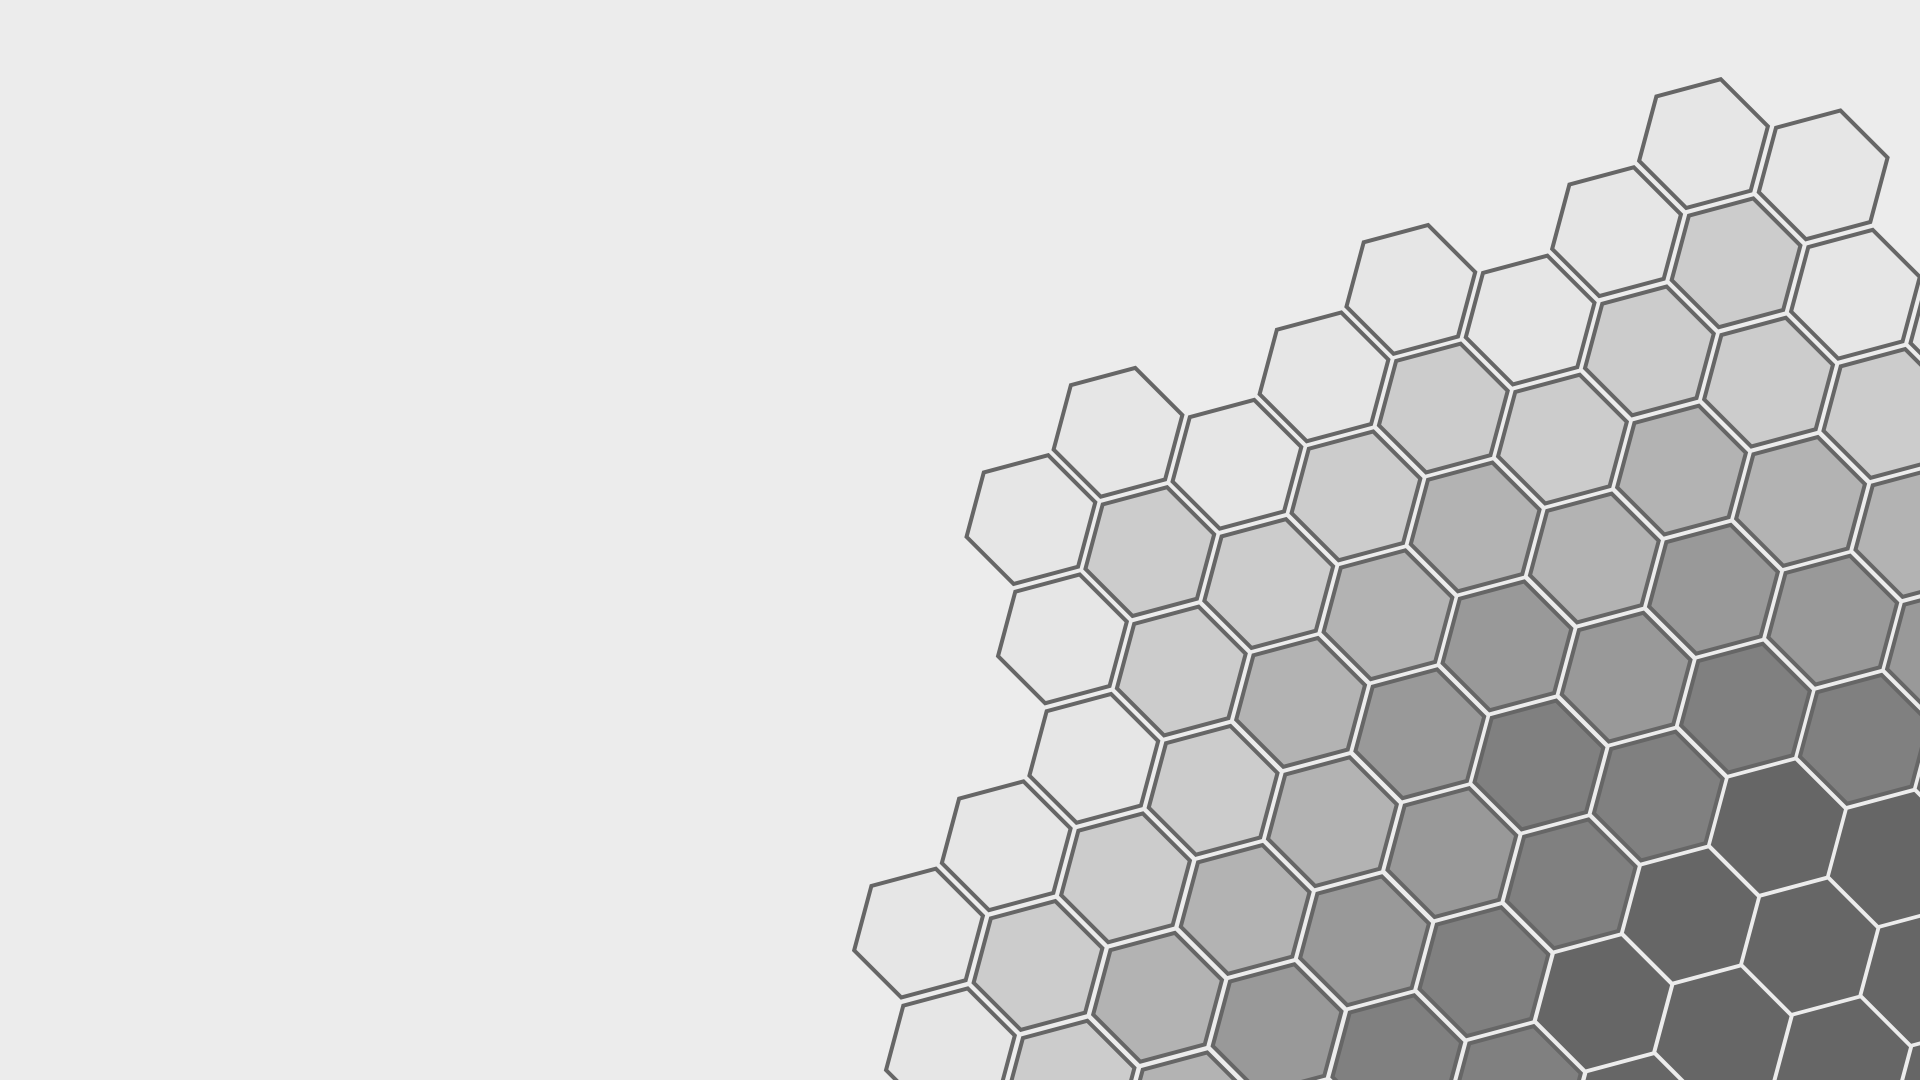 Wallpapers Patterns Minimalistic Abstract Honeycomb Pattern